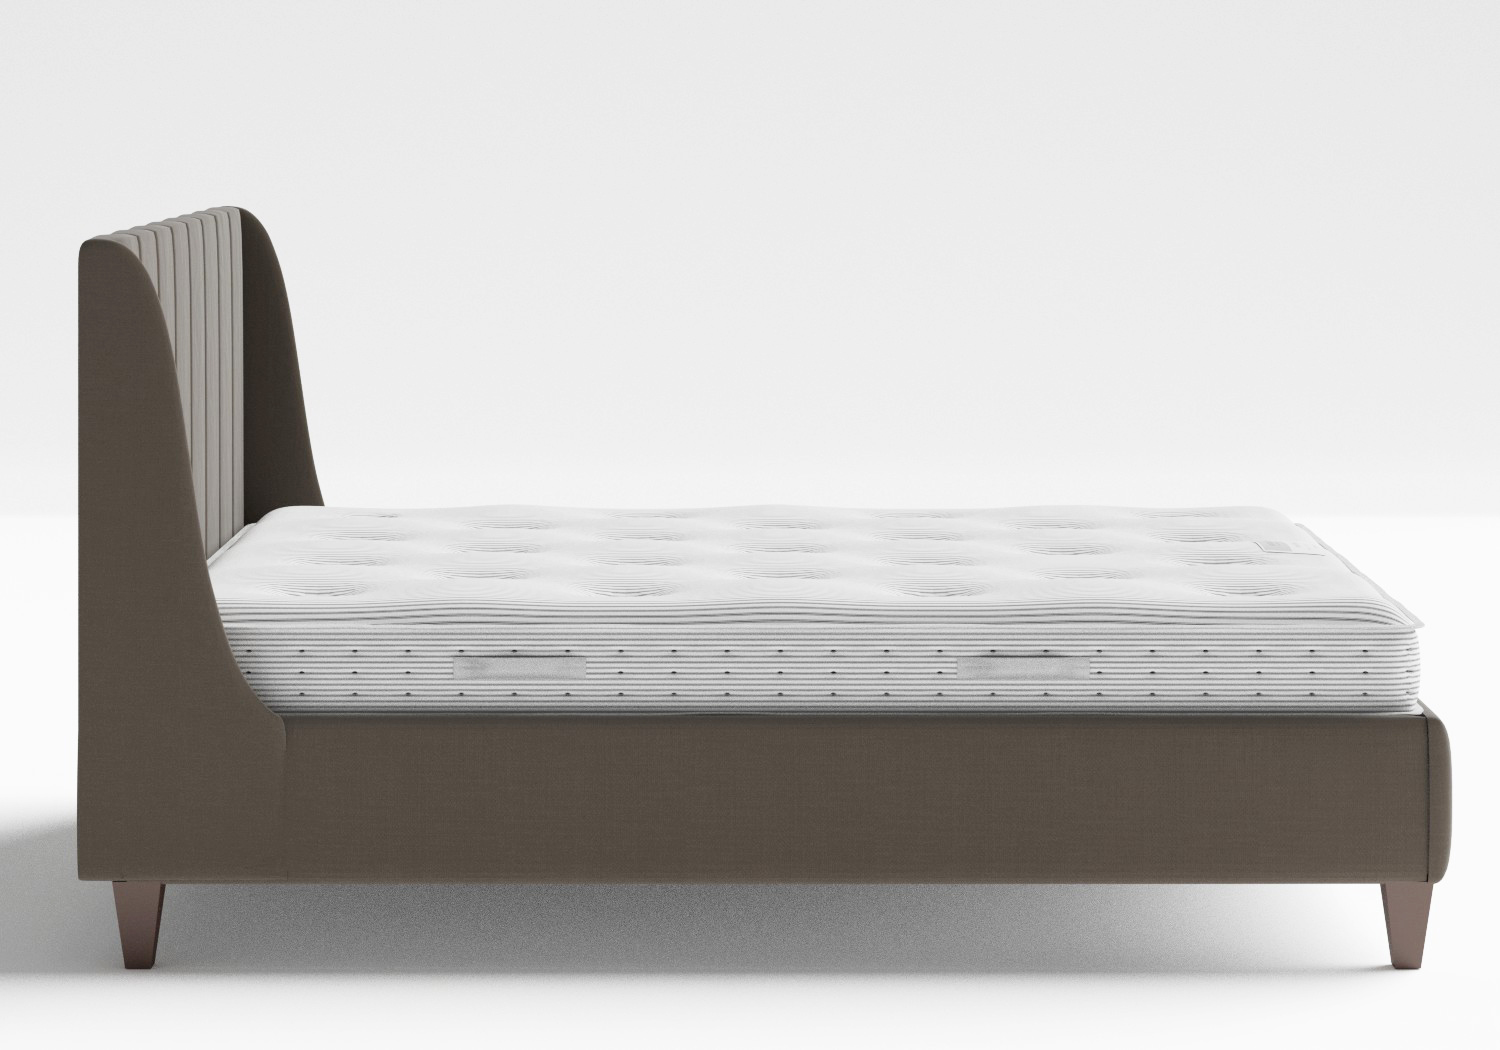 Sunderland Upholstered bed in Grey fabric shown with Juno 1 mattress